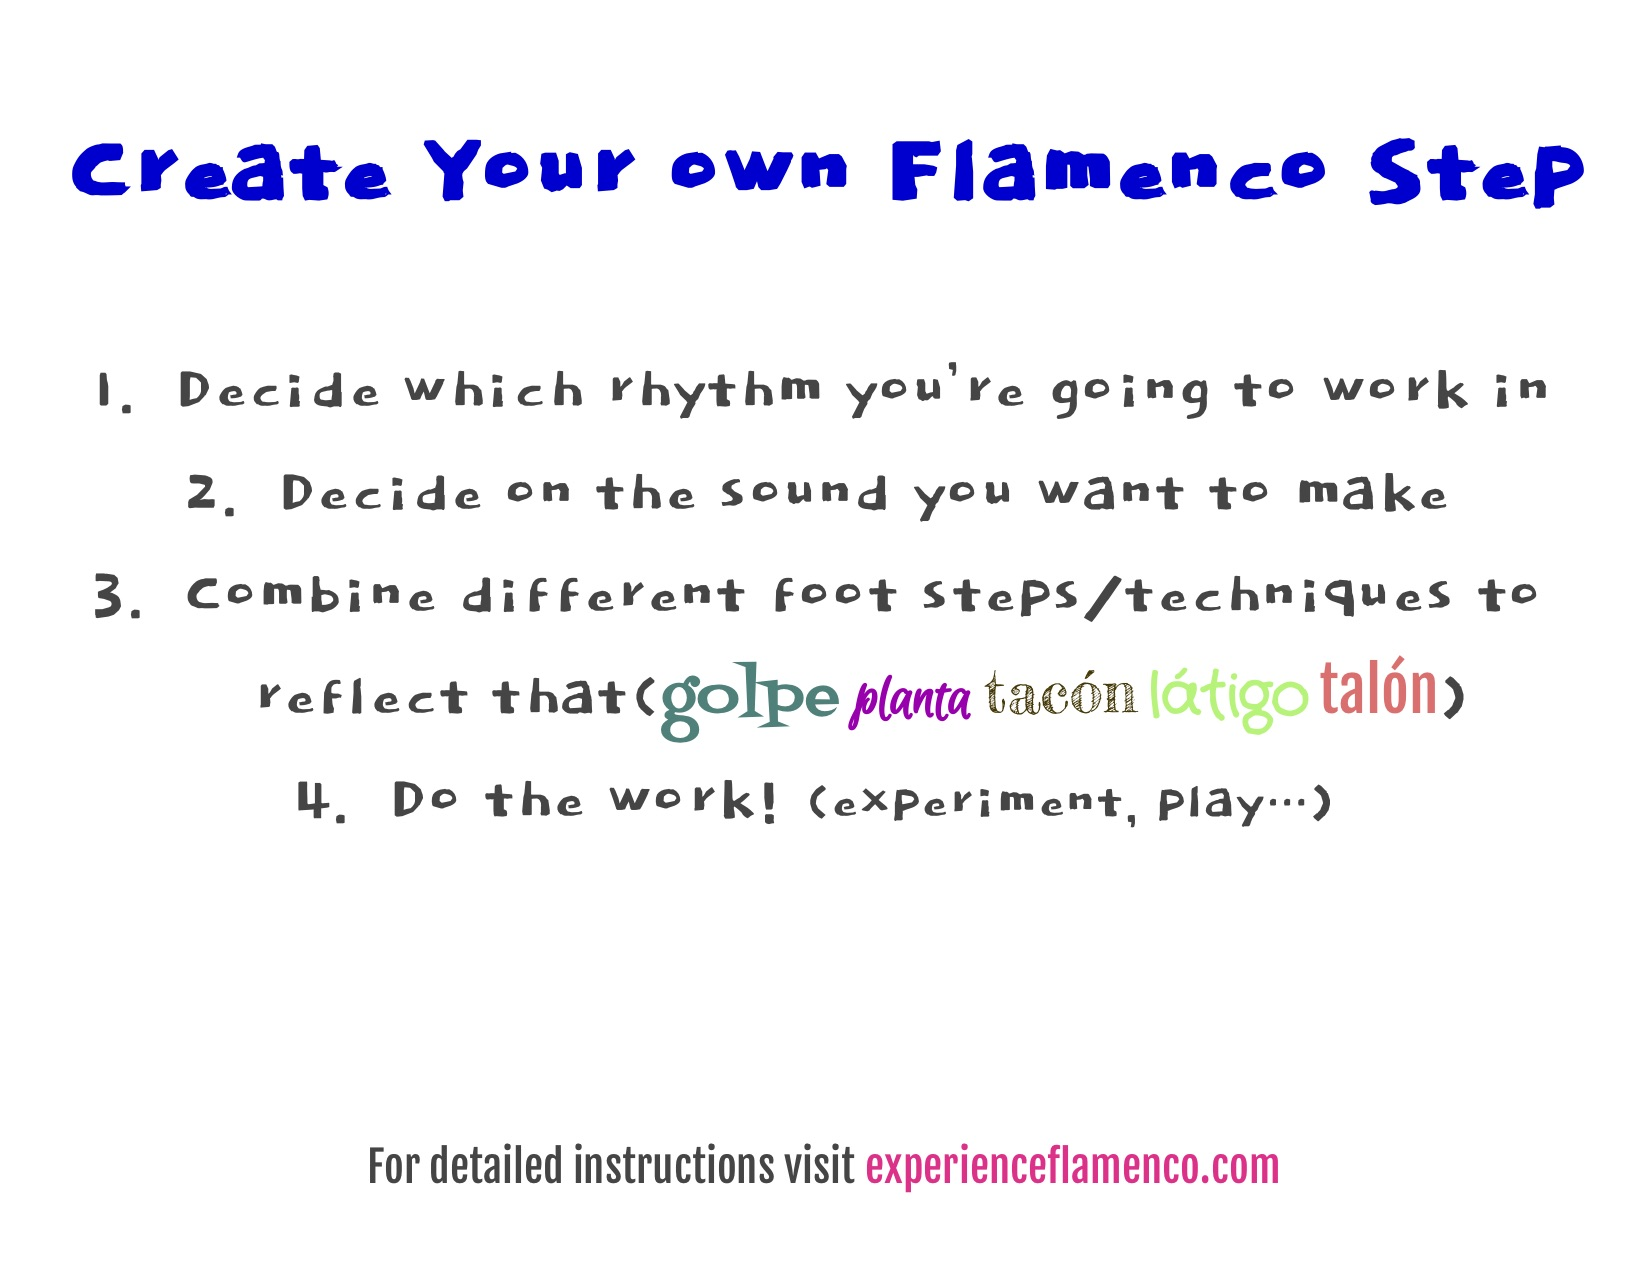 How to Create Your Own Flamenco Step